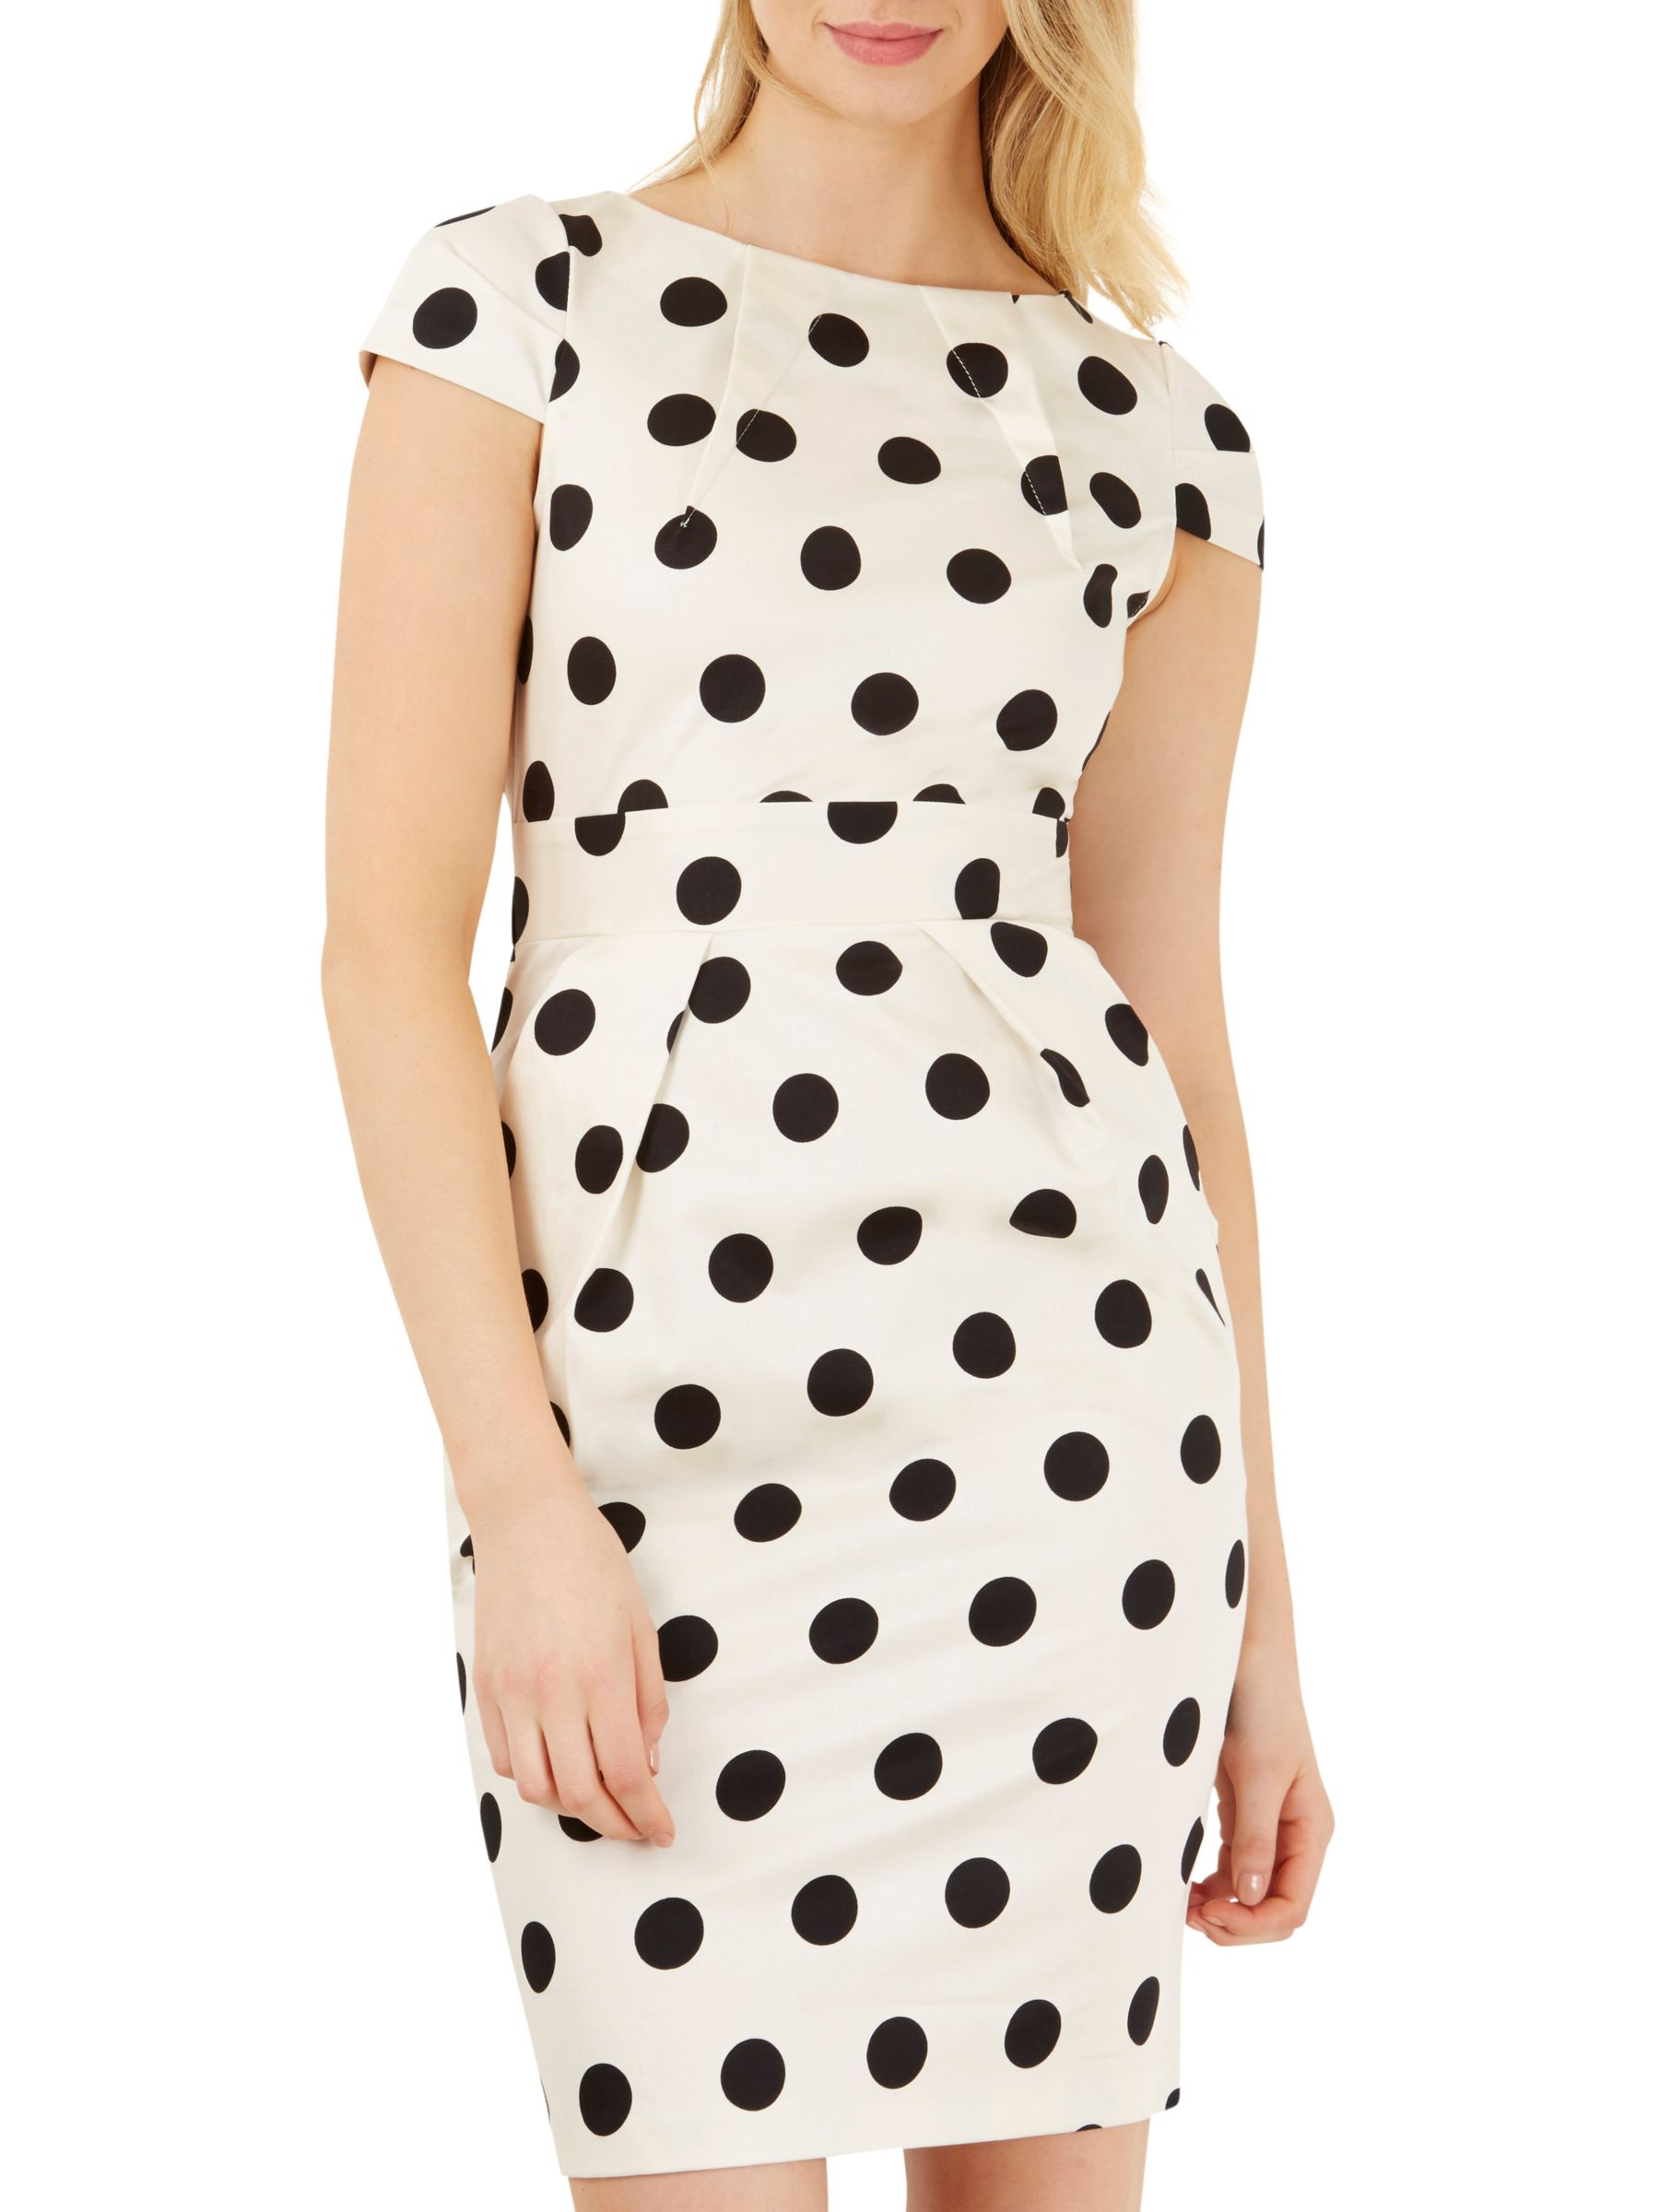 Closet Closet Polka Tie Back Dress, Black/White